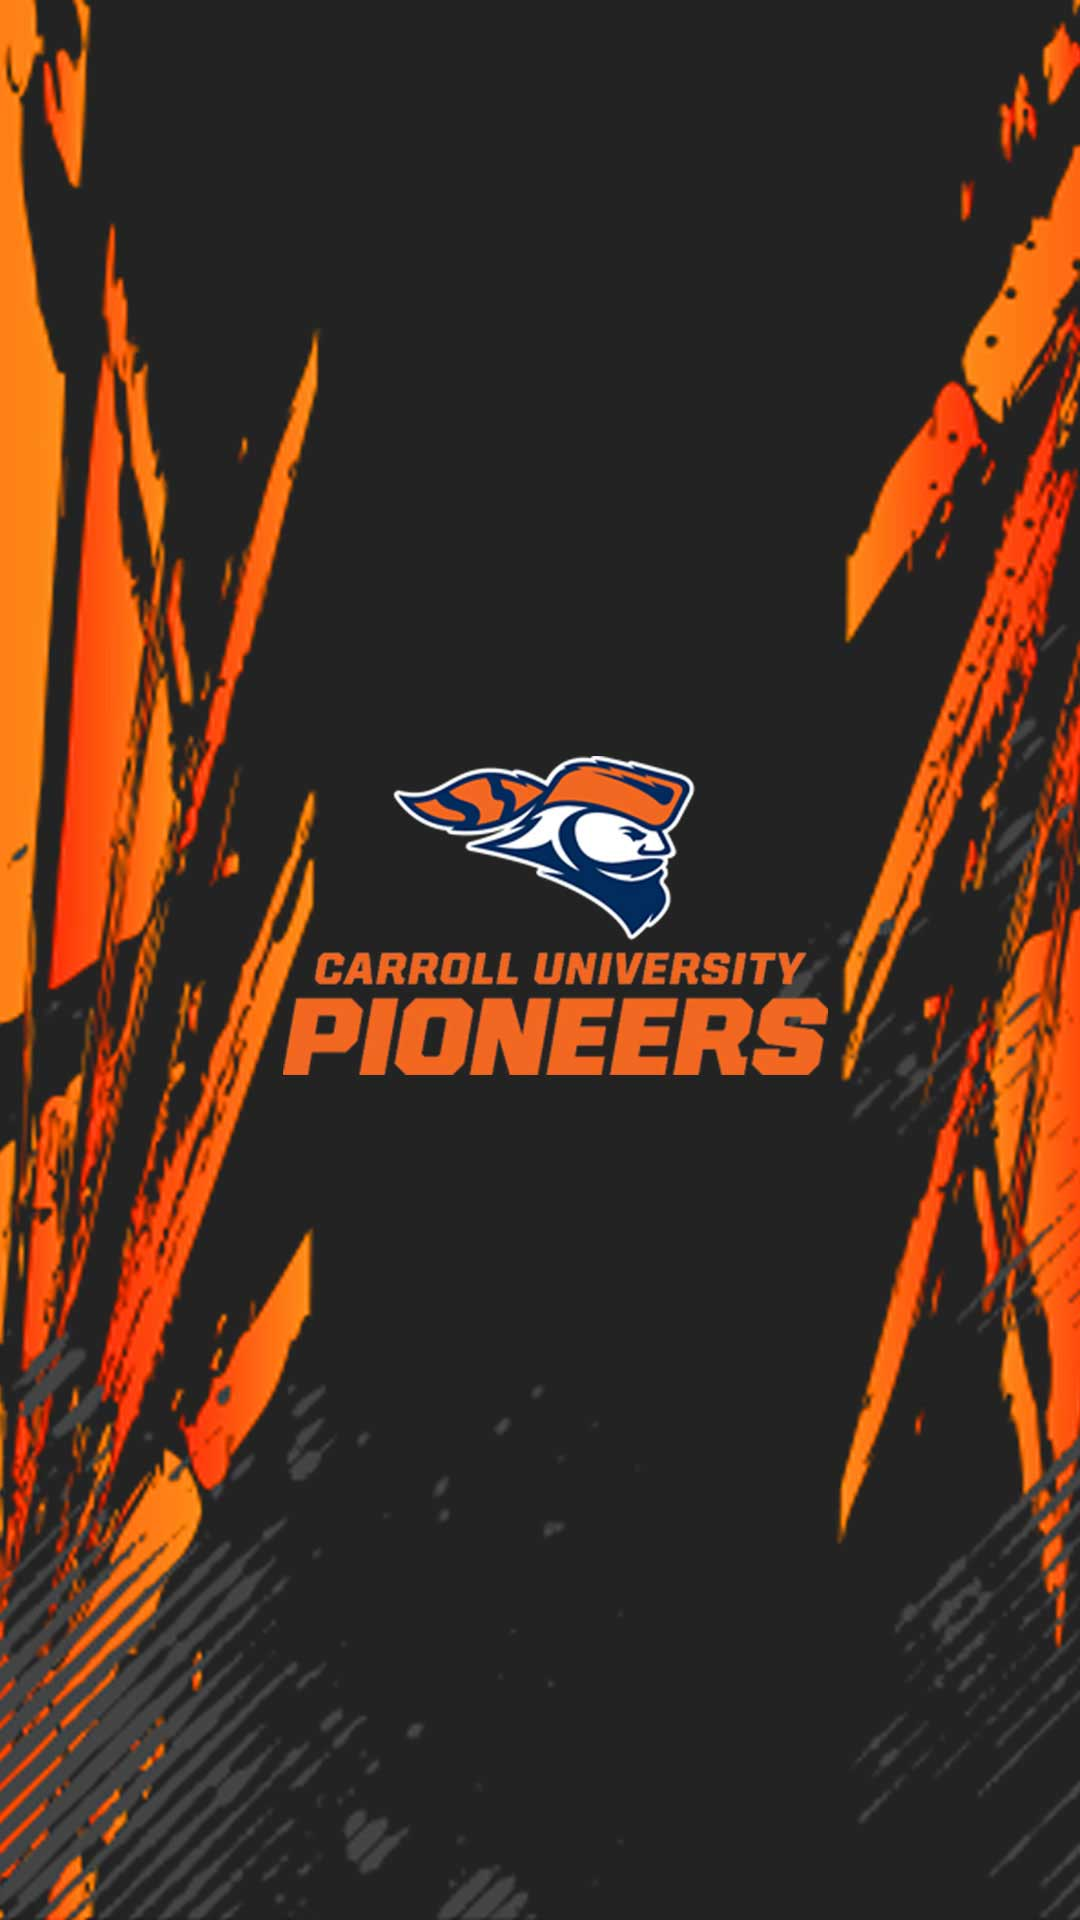 Desktop and Mobile Wallpapers Carroll University 1080x1920